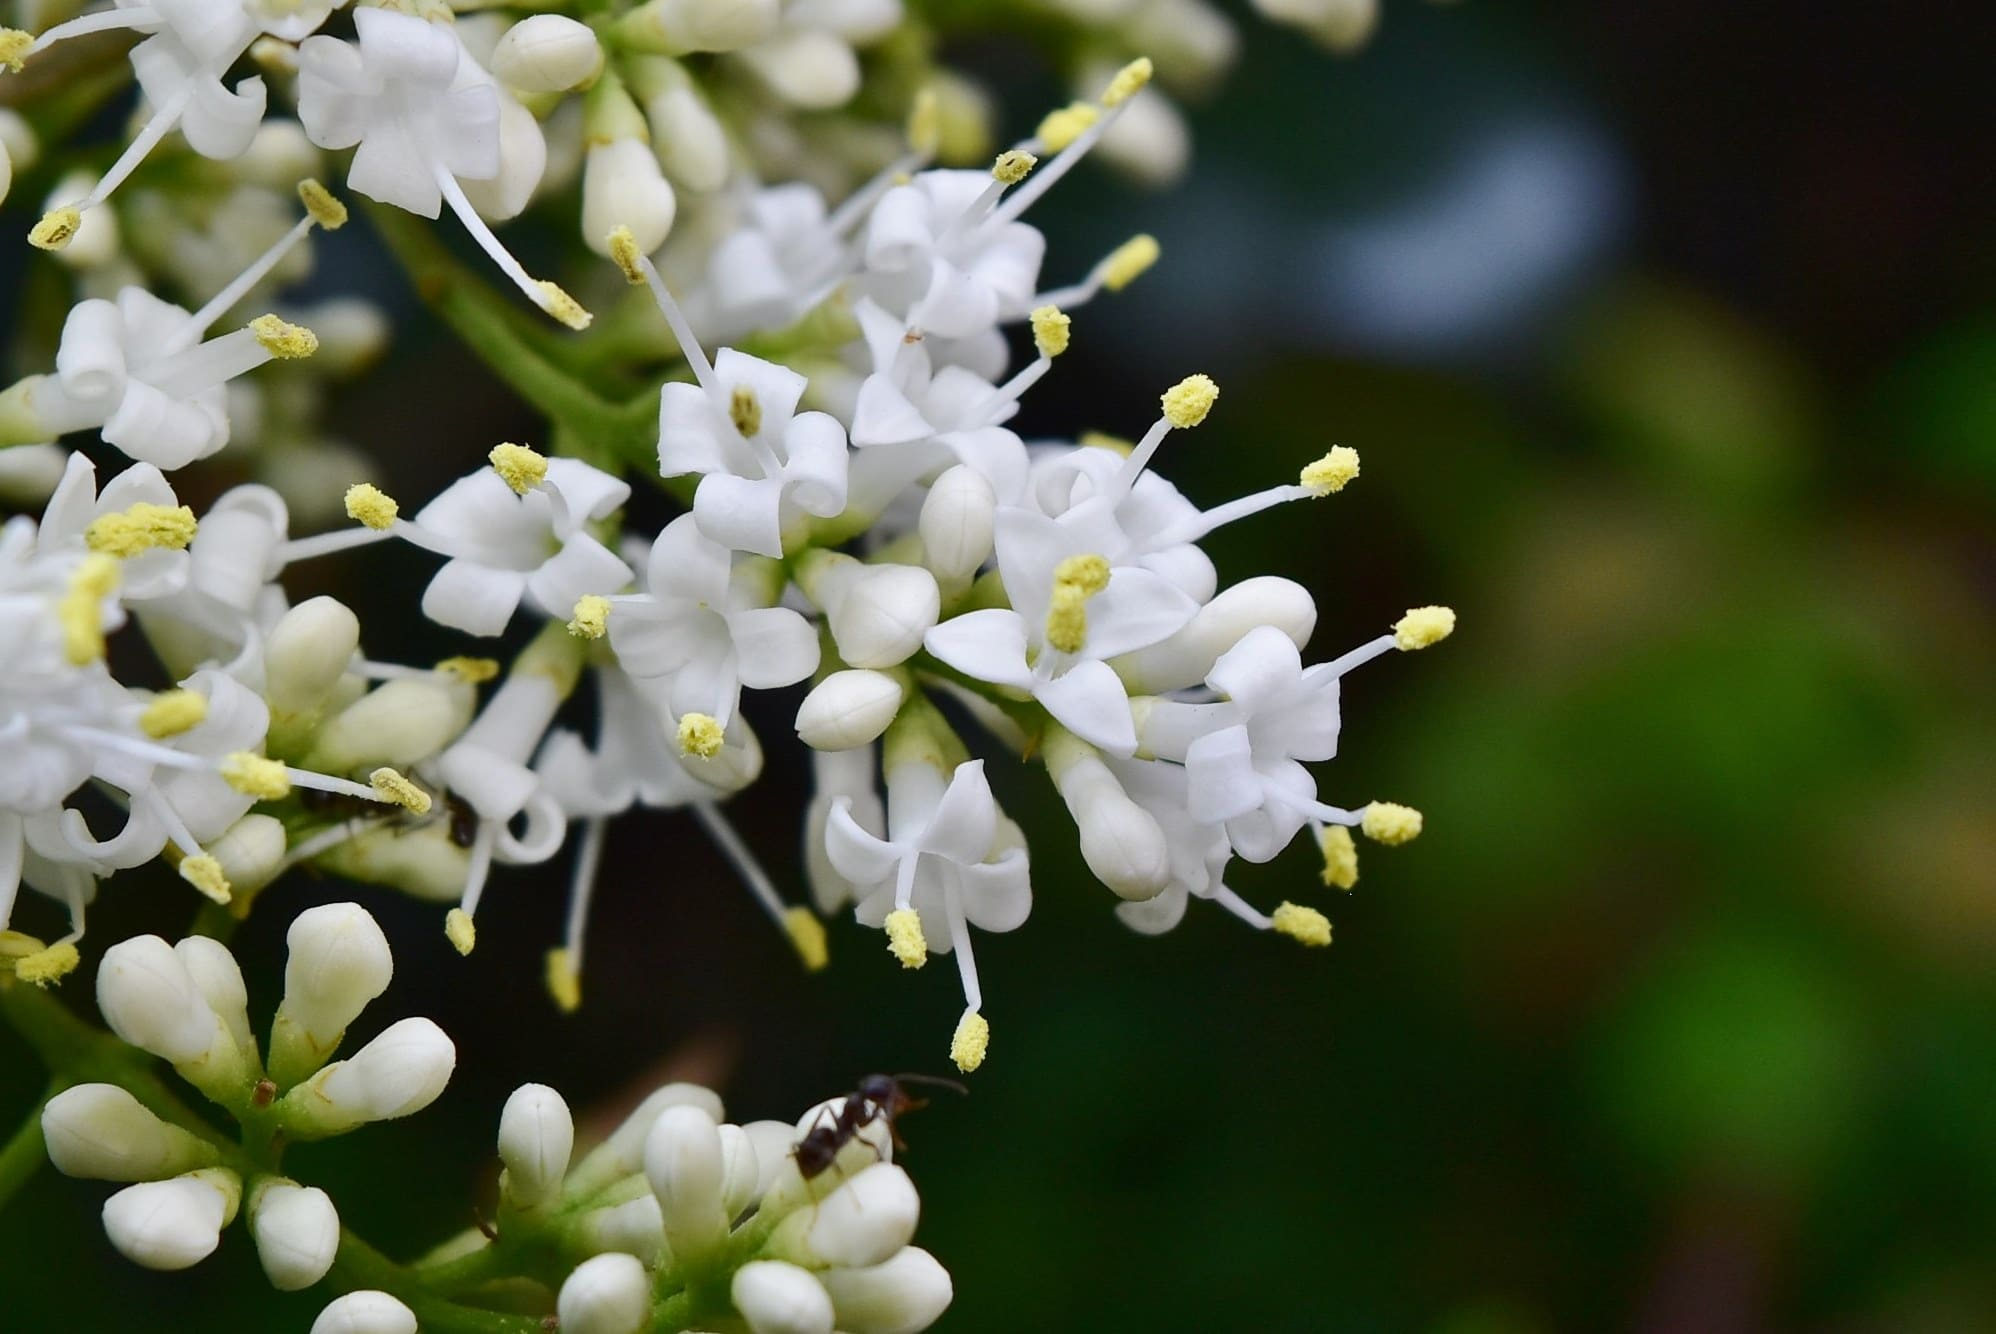 flower of Japanese privet